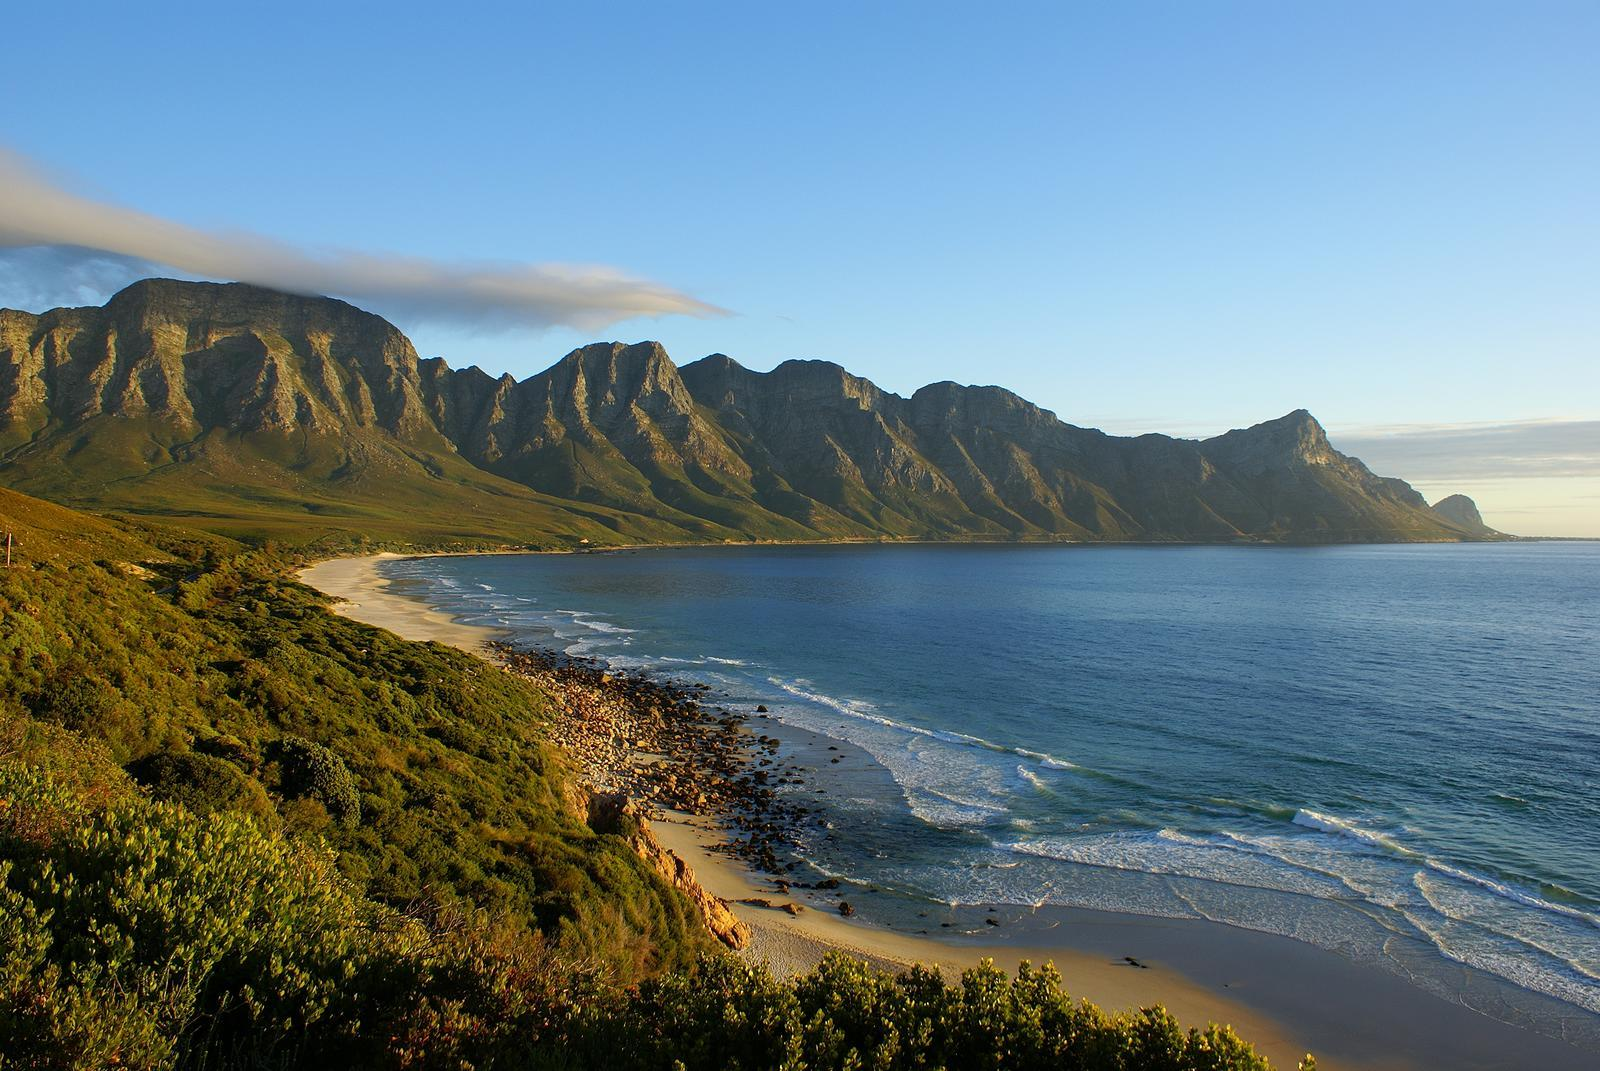 Http Commons Wikimedia Org Wiki File Magic Sunset On Rooi Els Coastal Road South Africa Jpg